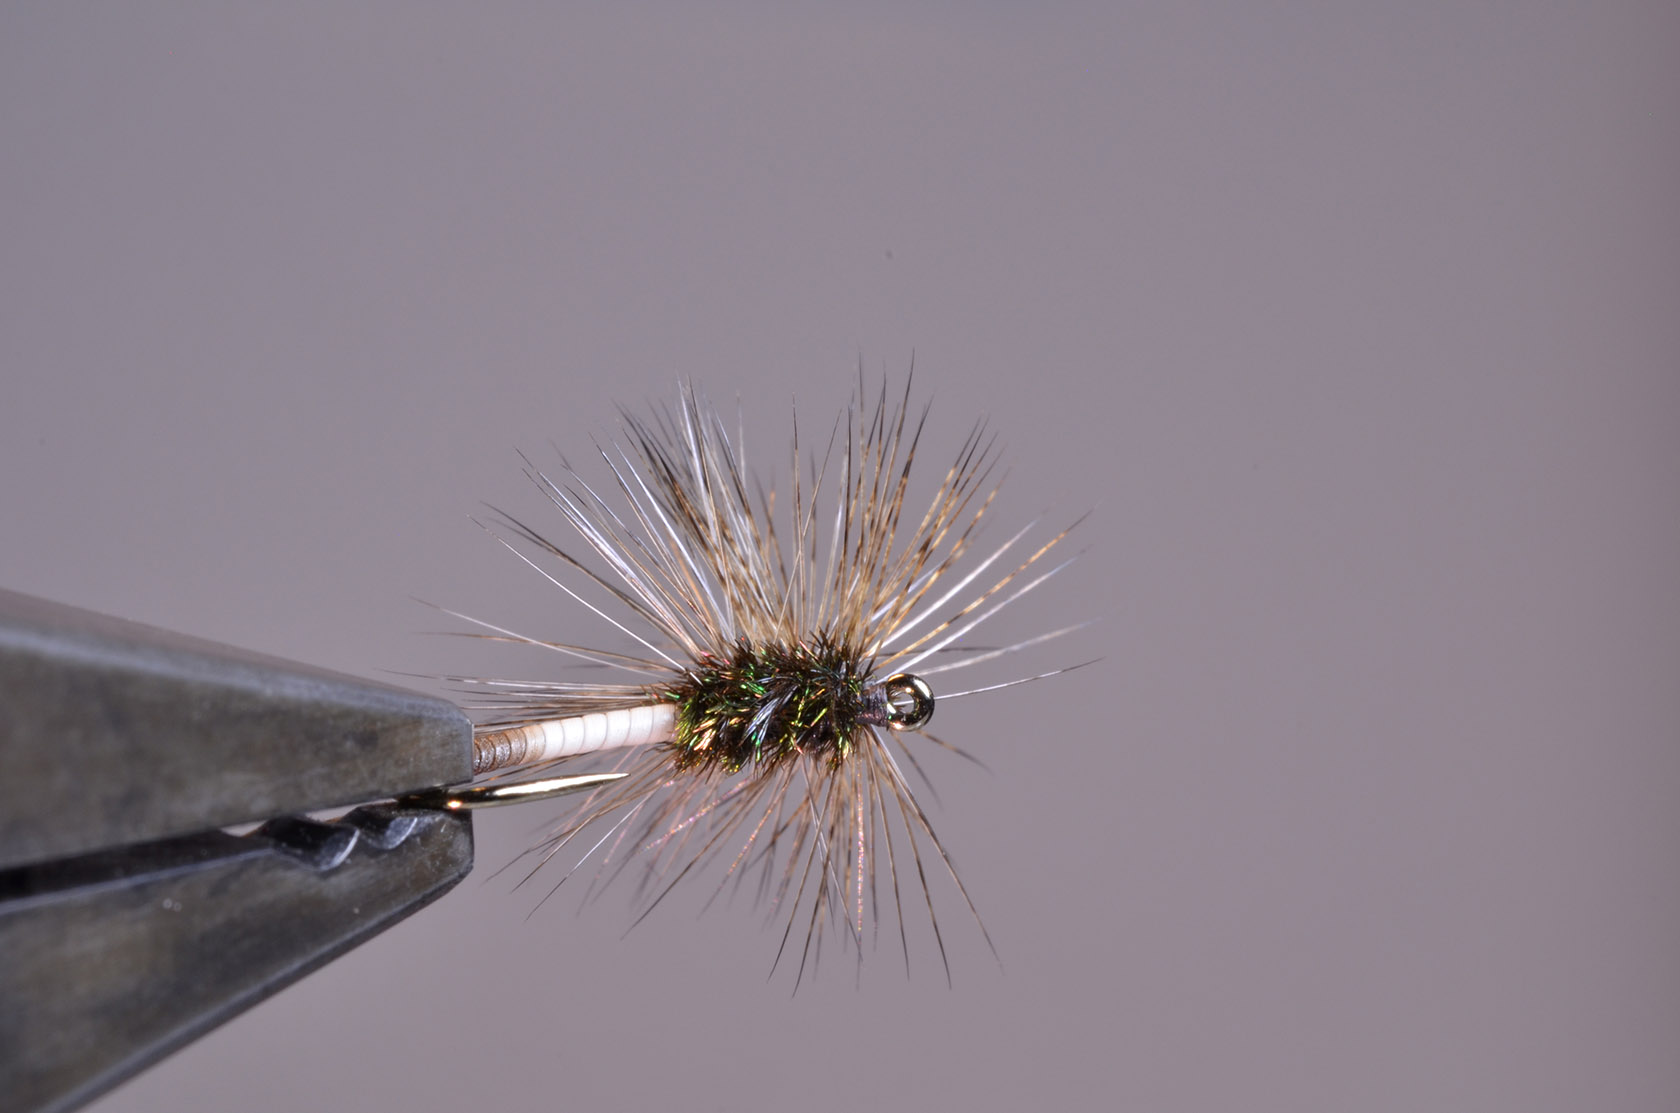 15. Dense, speckled hackle that to me suggests motion (Emerger).